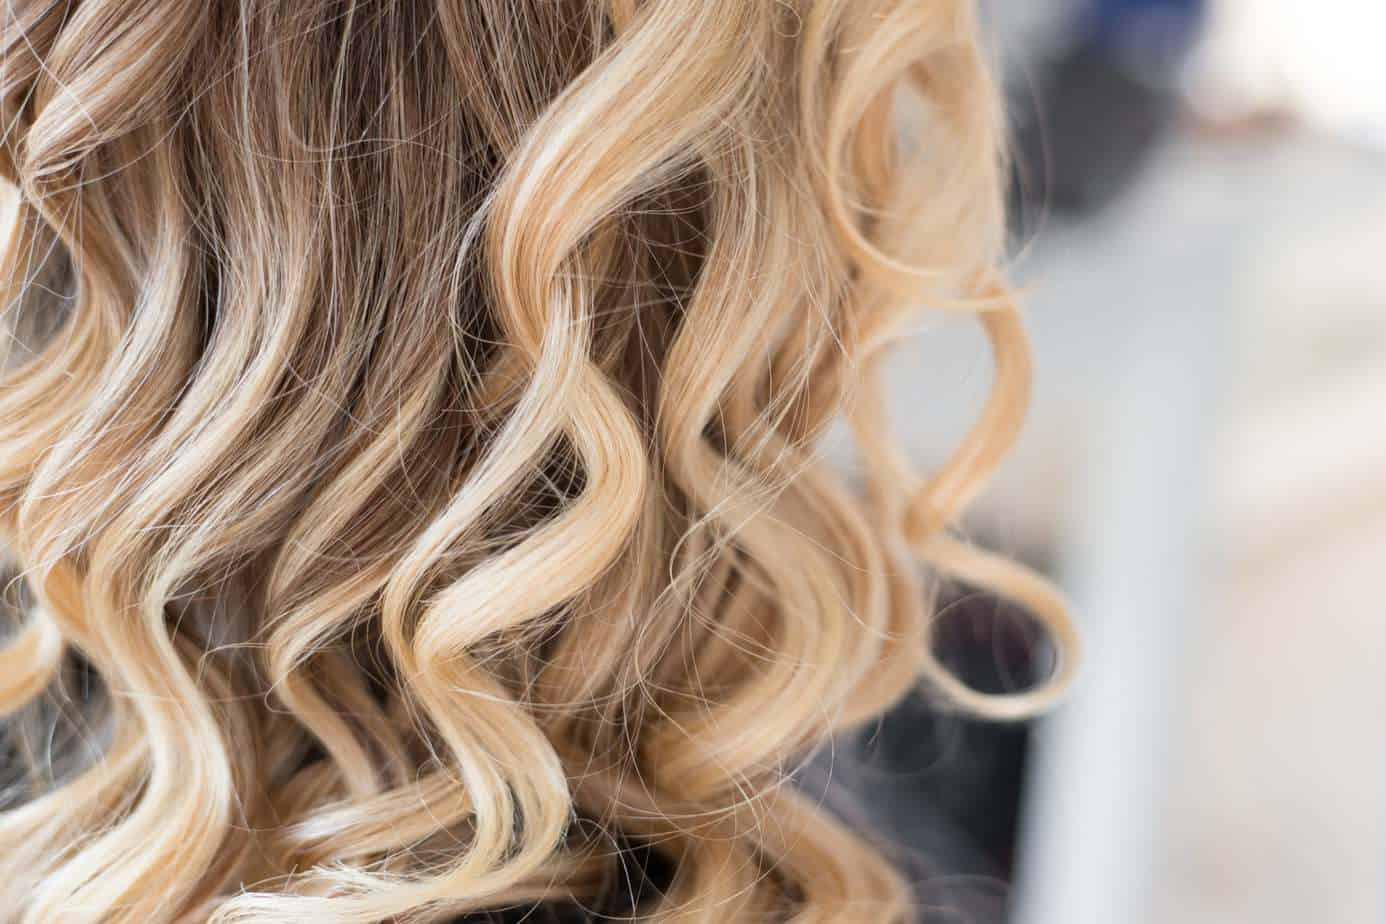 22 New Chic Haircuts for Long Hair 2022